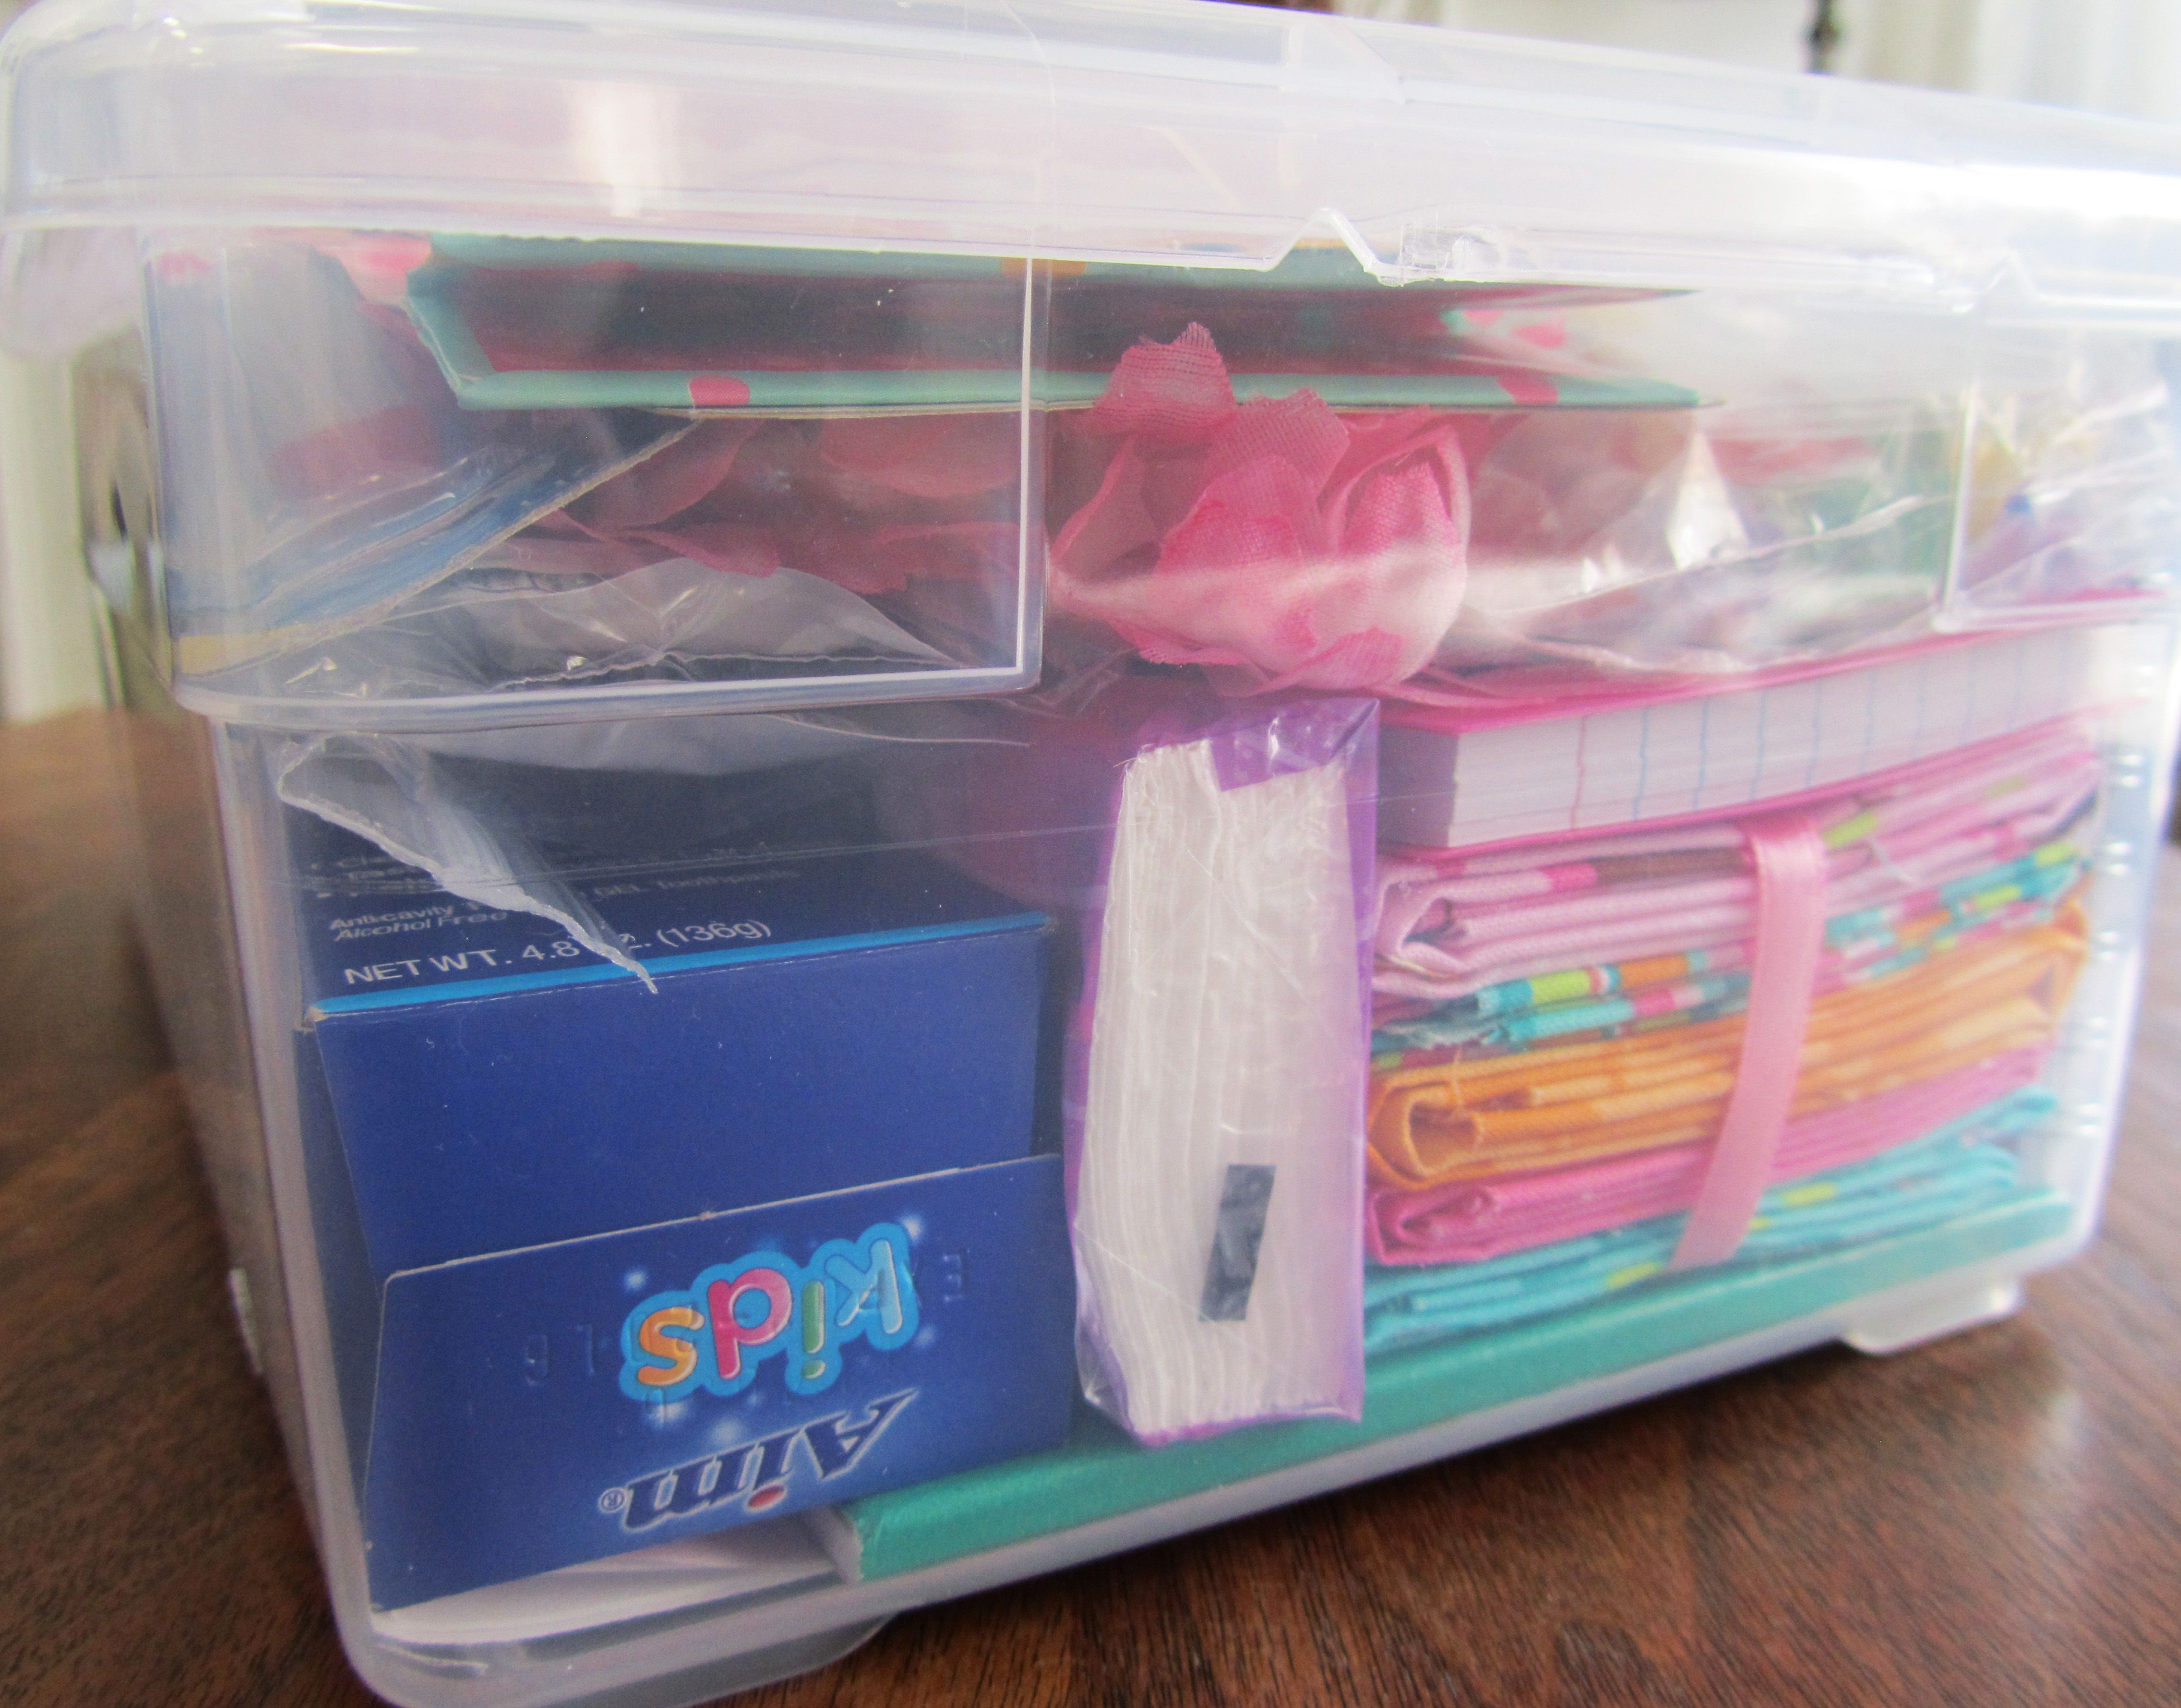 Side view of same box for girl age 10-14 showing material for sewing, school supplies, and other items. Check with OCC about including toothpaste because it's not allowed in some countries.